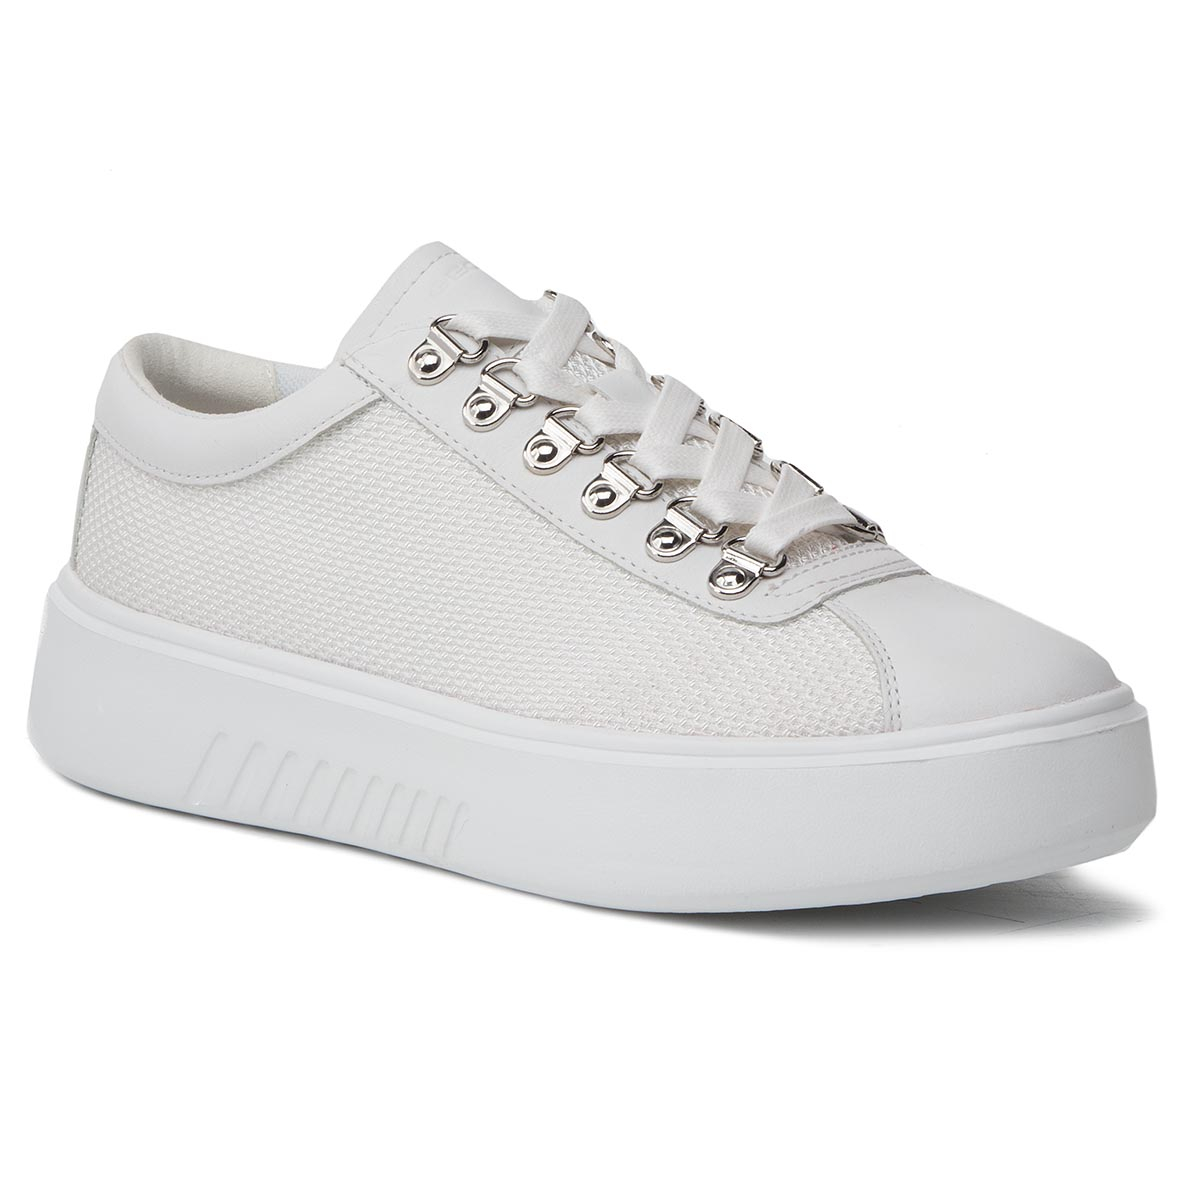 Sneakers GEOX - D Nhenbus H D828DH 01485 C1000 White